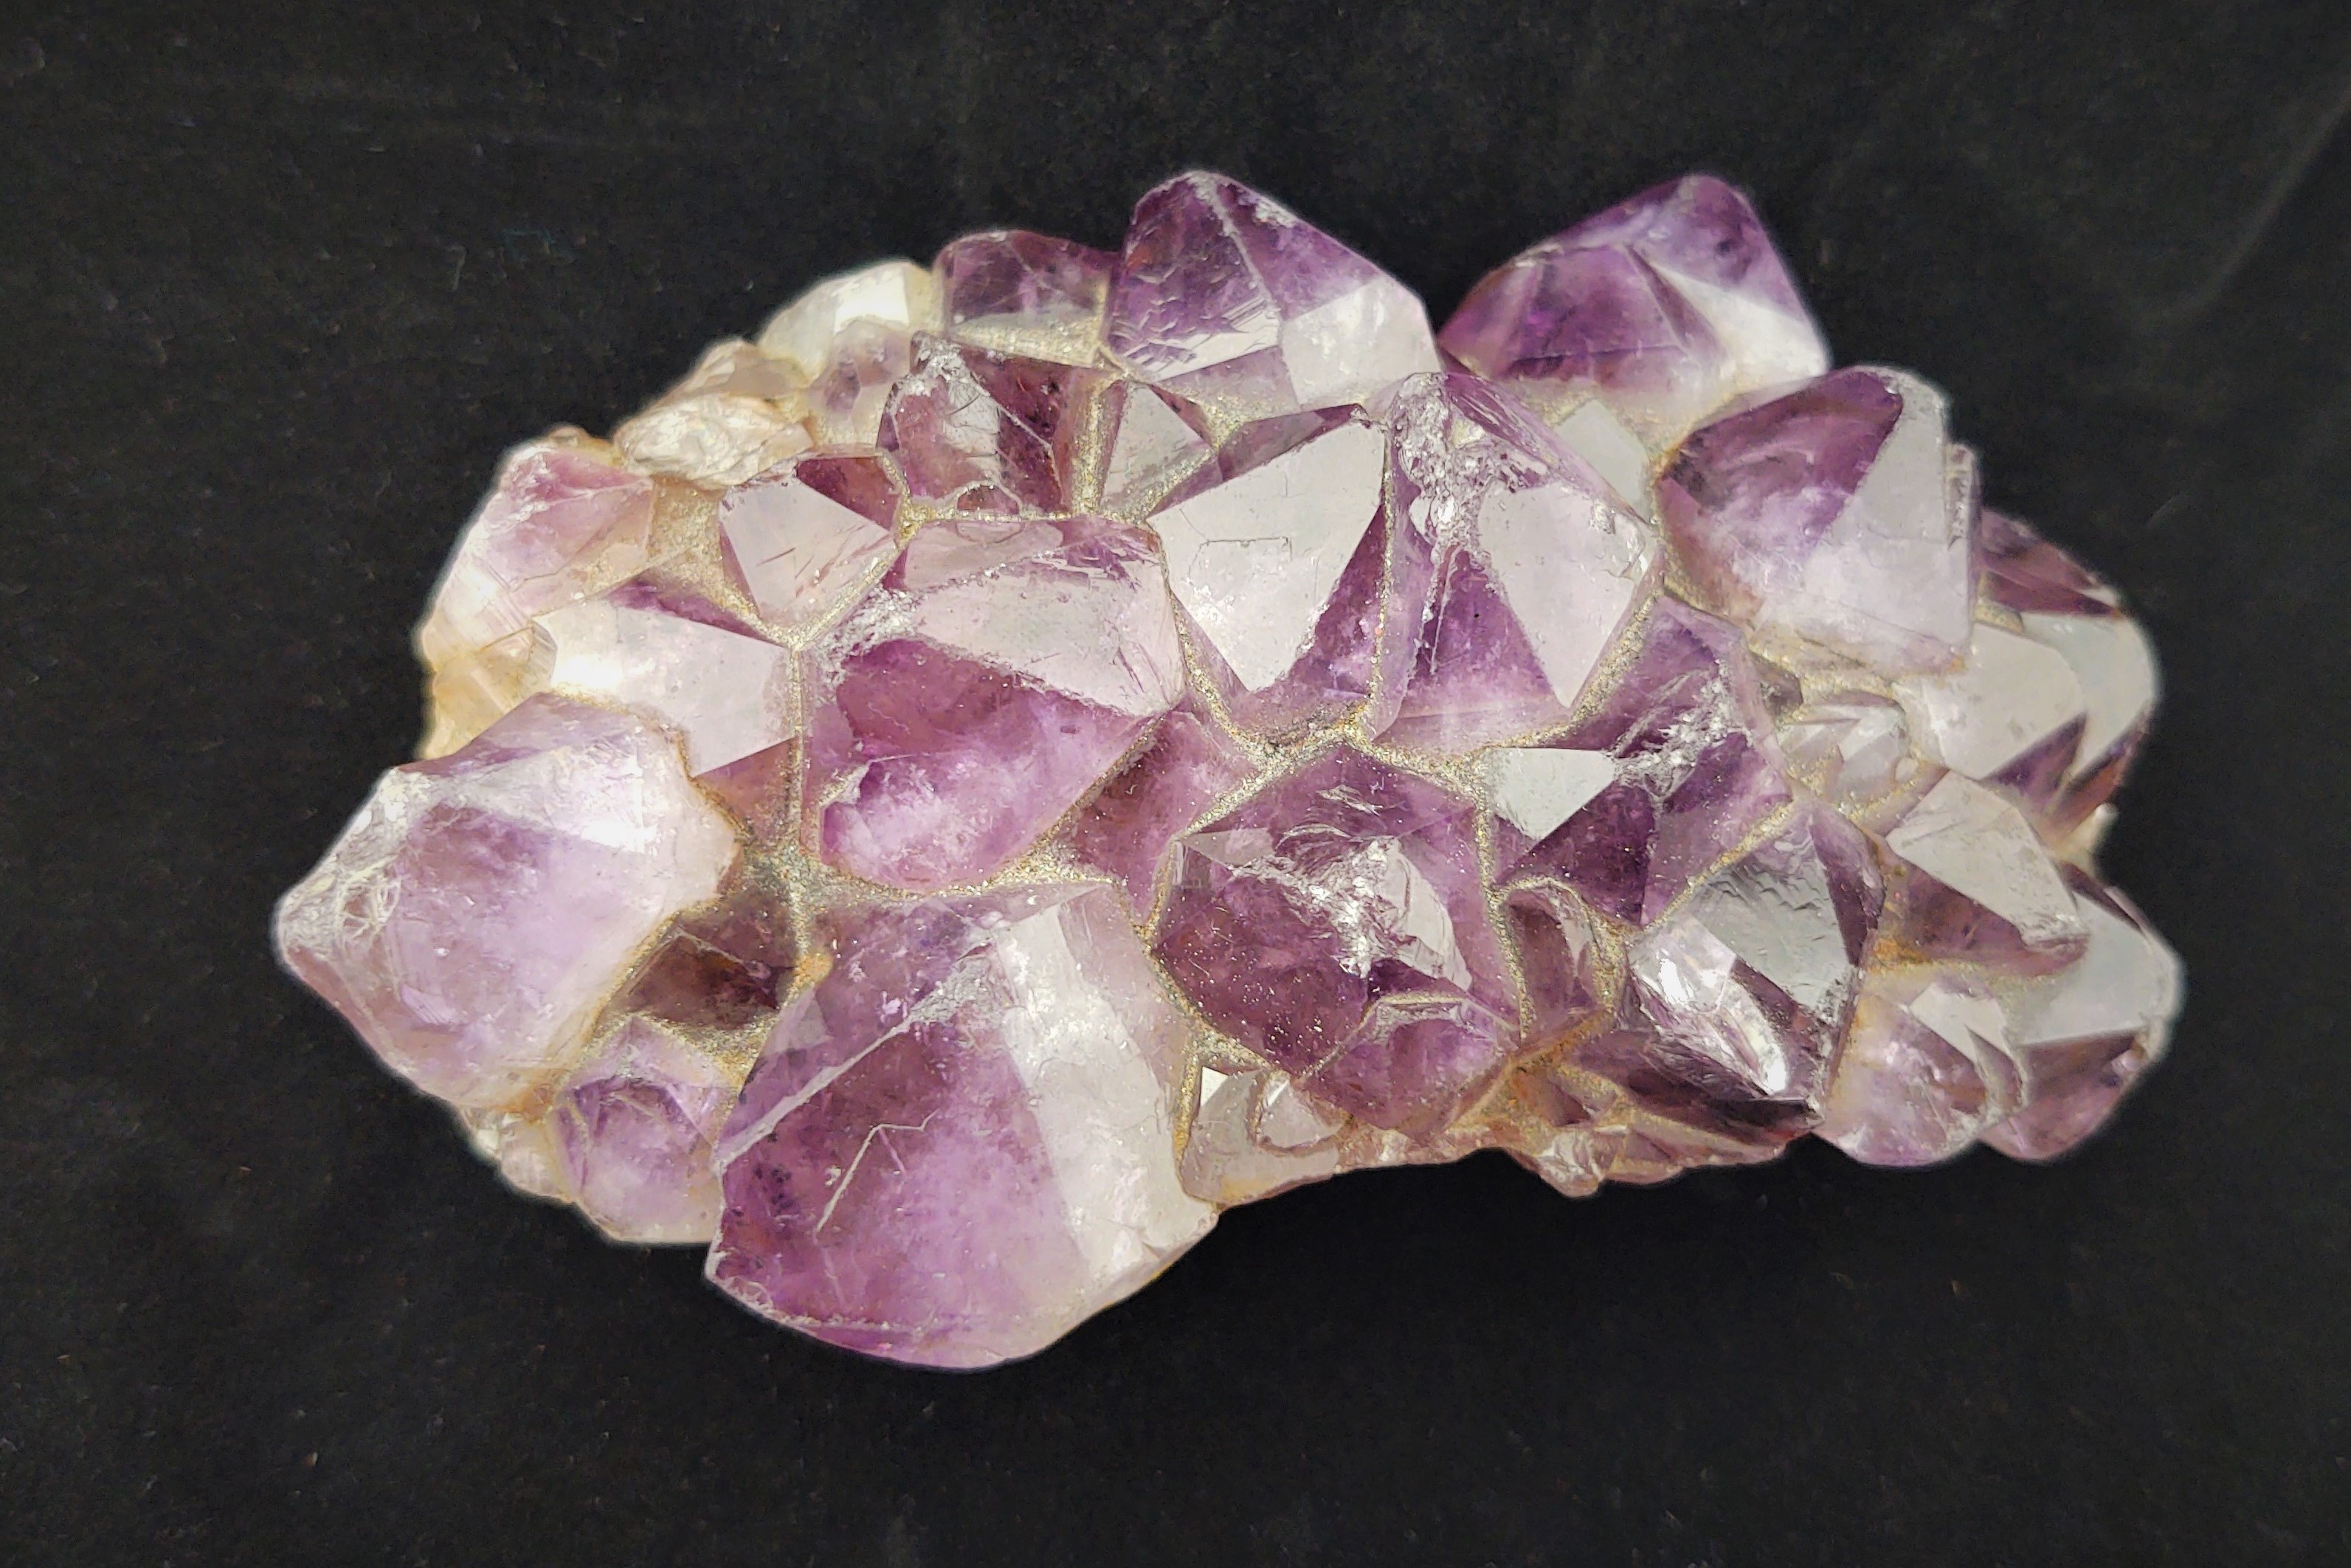 A cluster of purple crystals